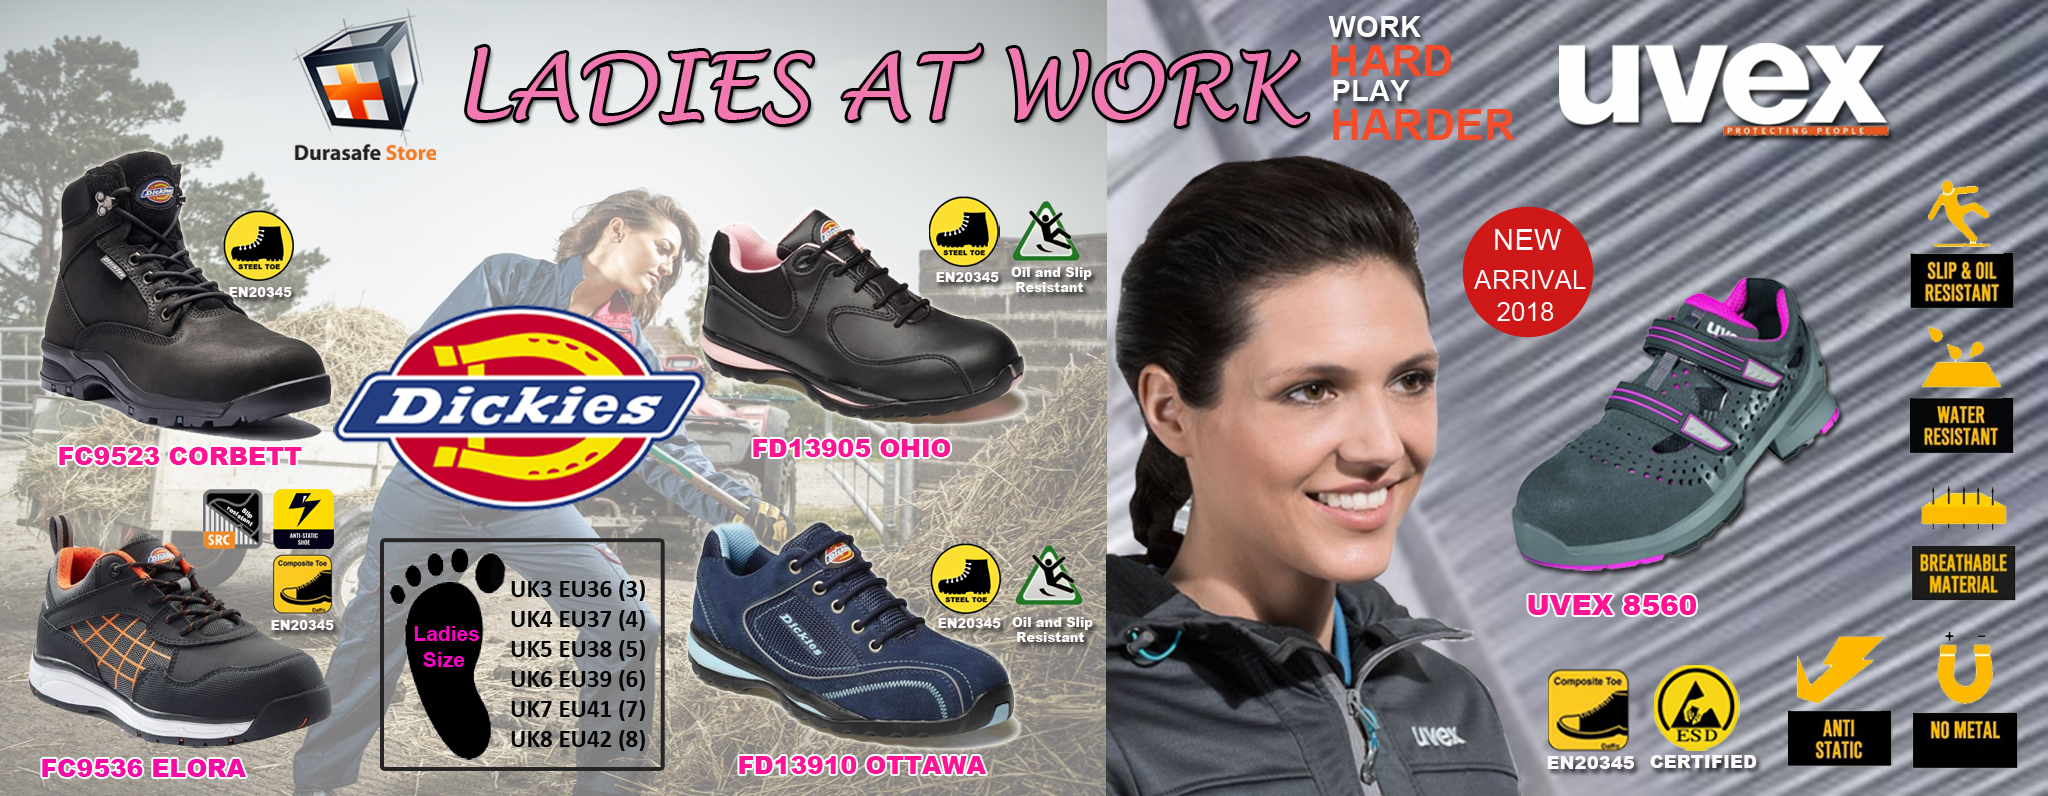 ladies safety shoe banner